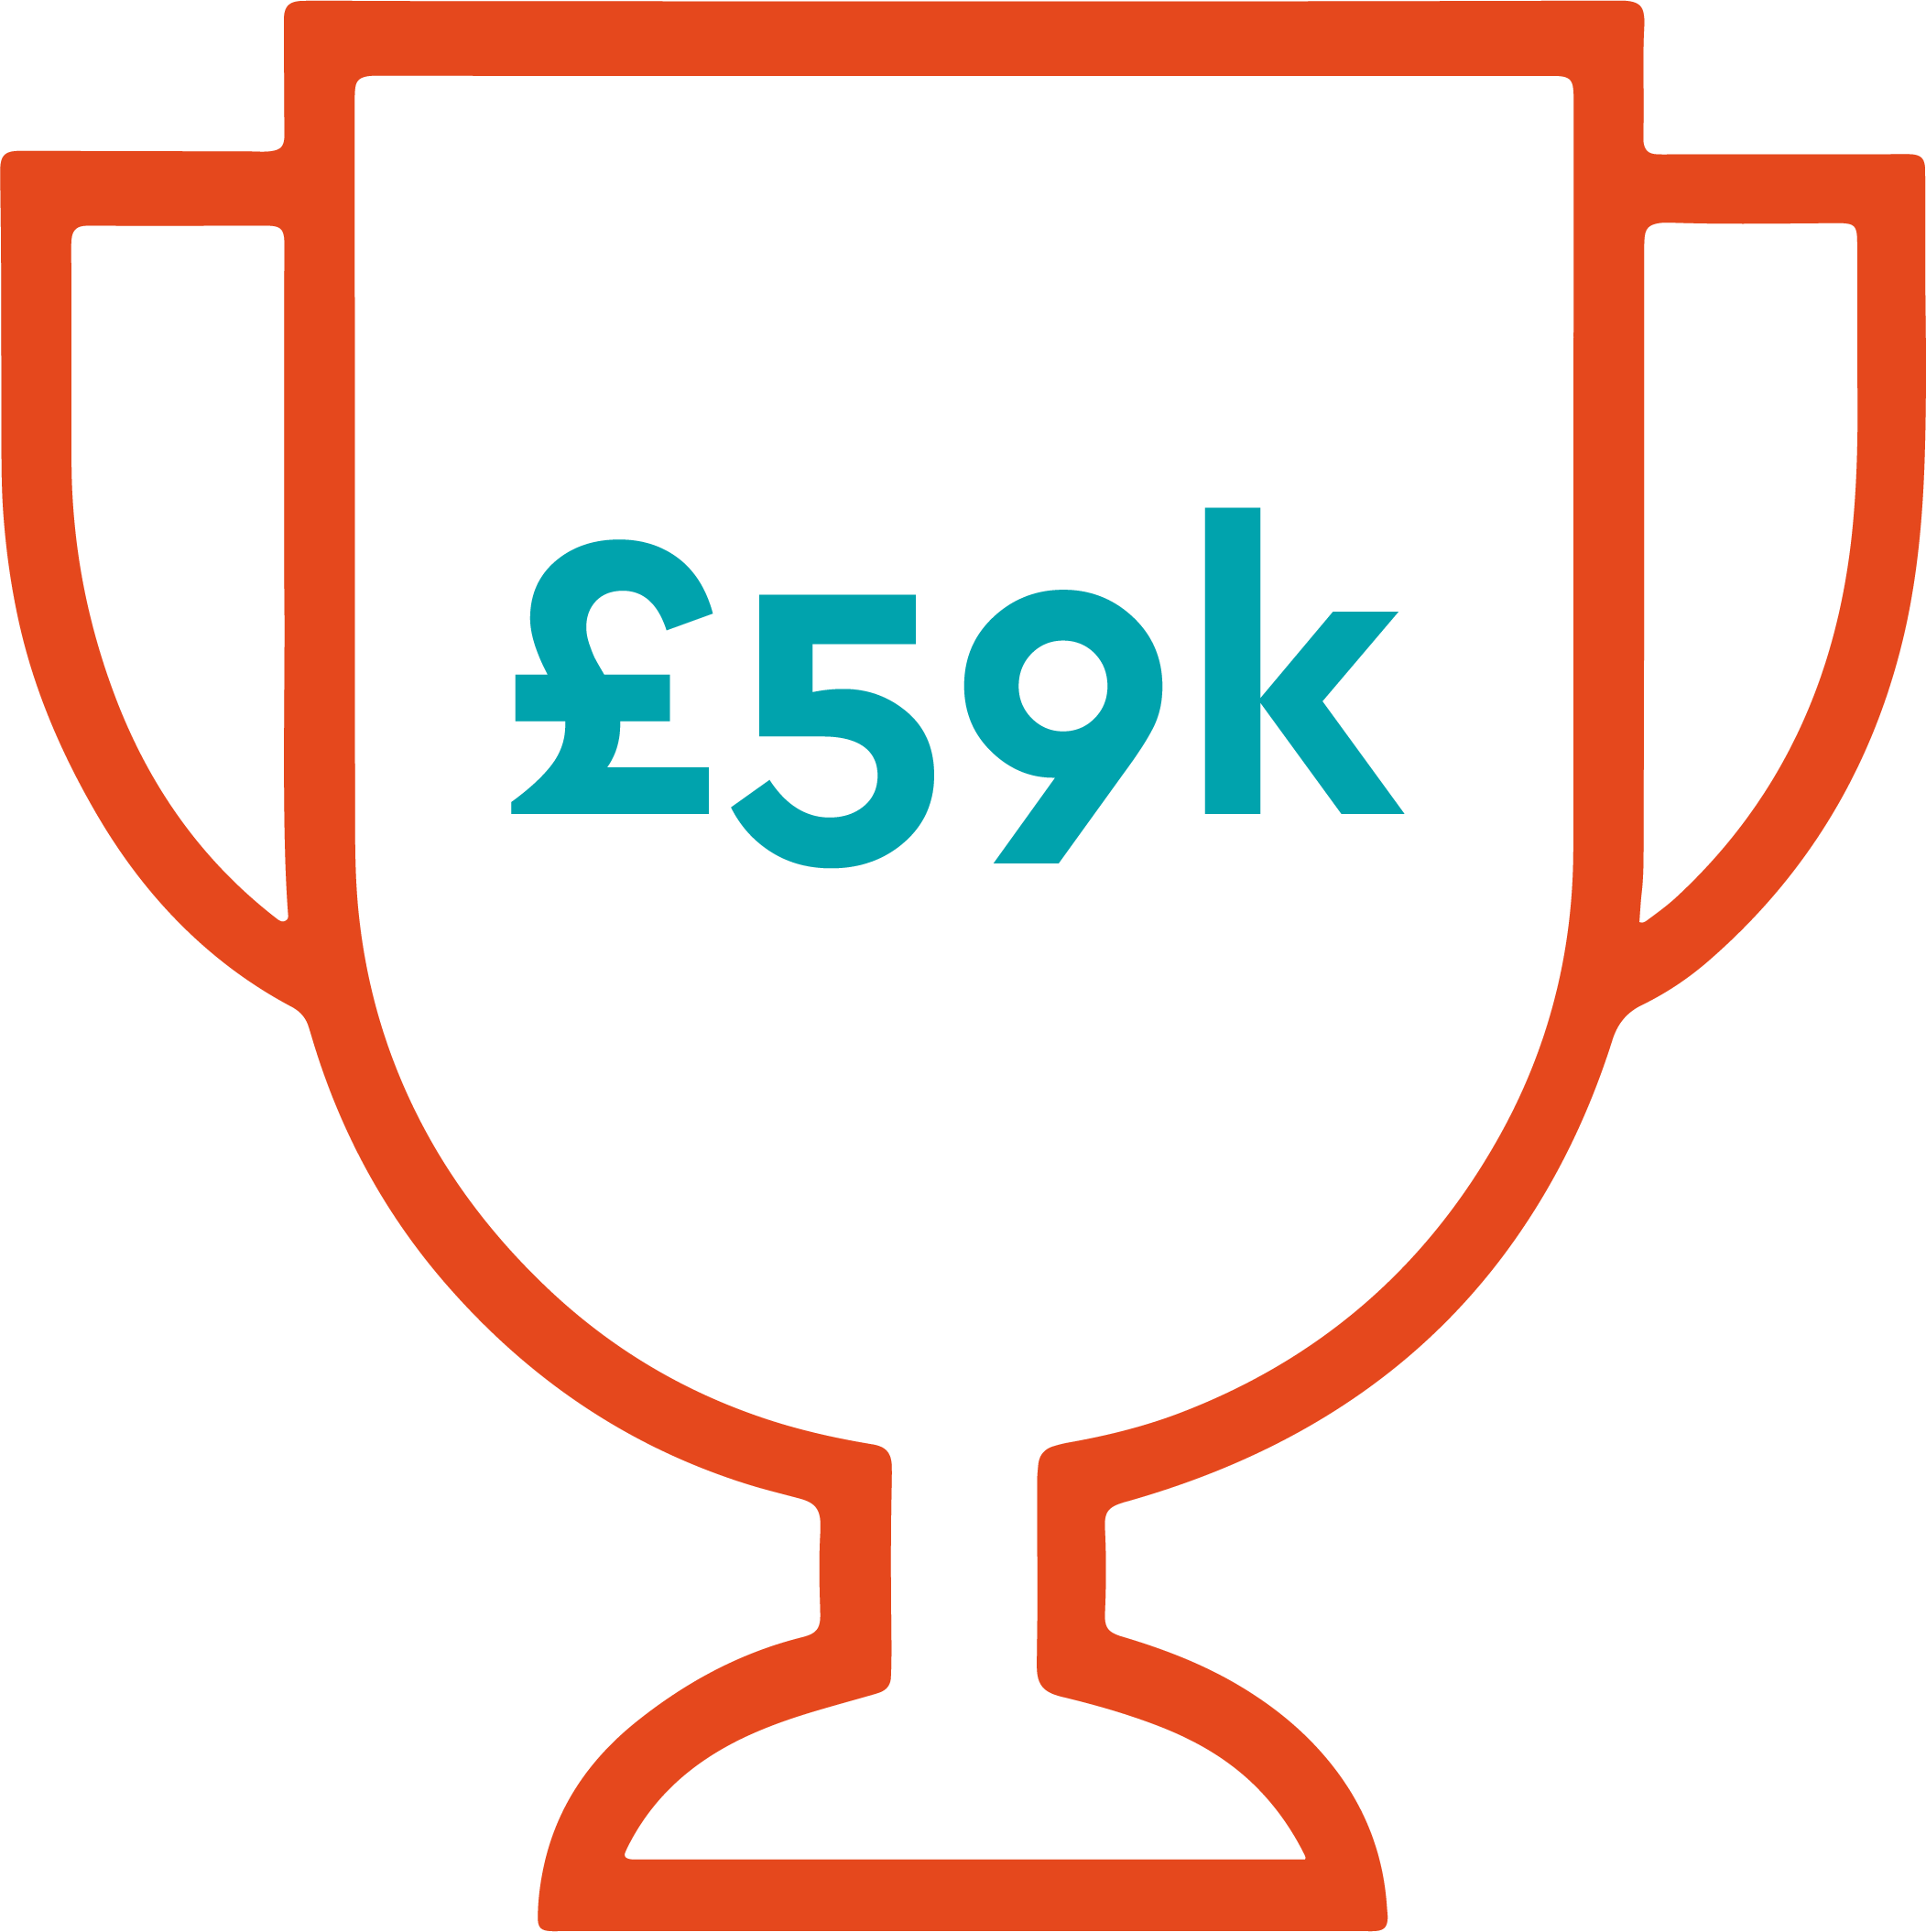 SMEs is £59,000